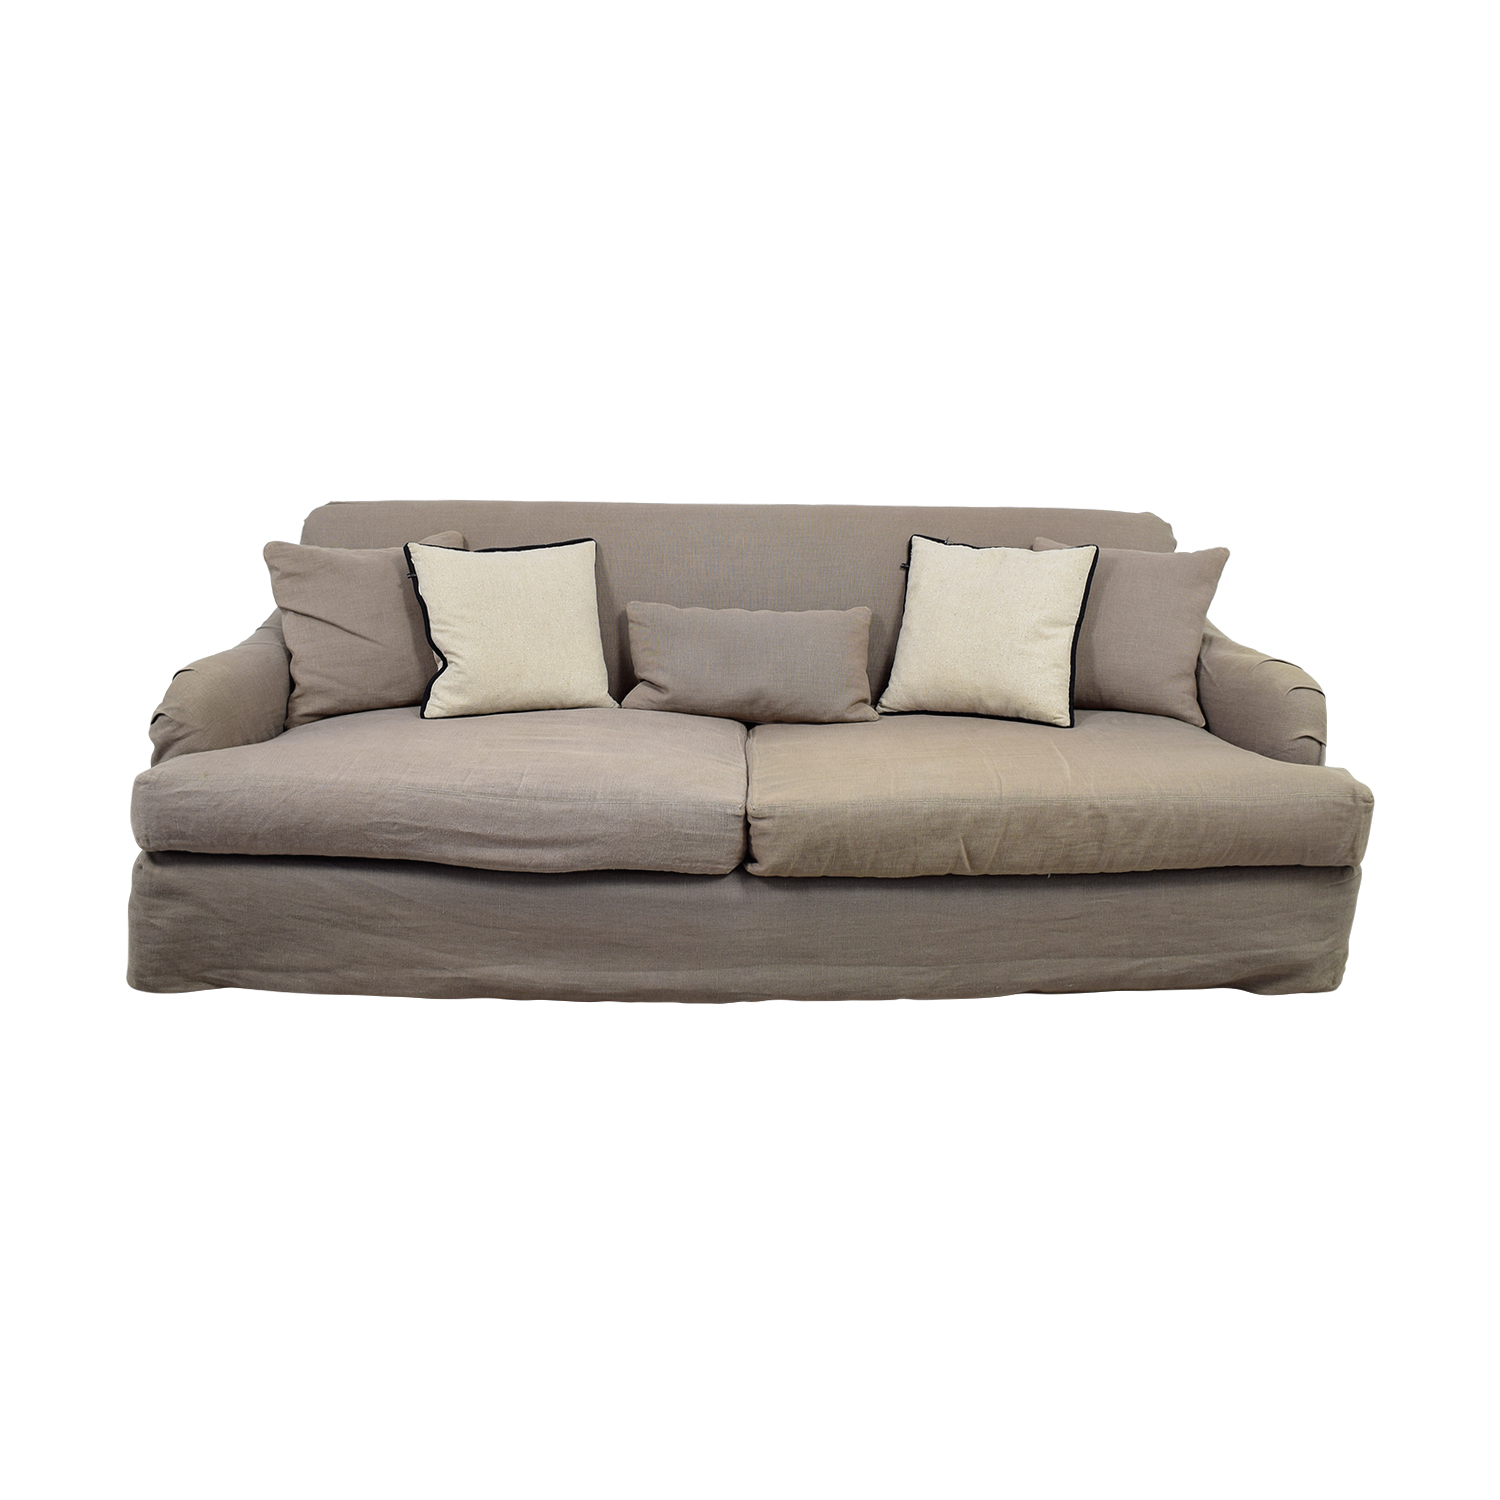 Sofa Outlet Paisley 90 Off Cisco Brothers Cisco Brothers Grey Linen Down Feather